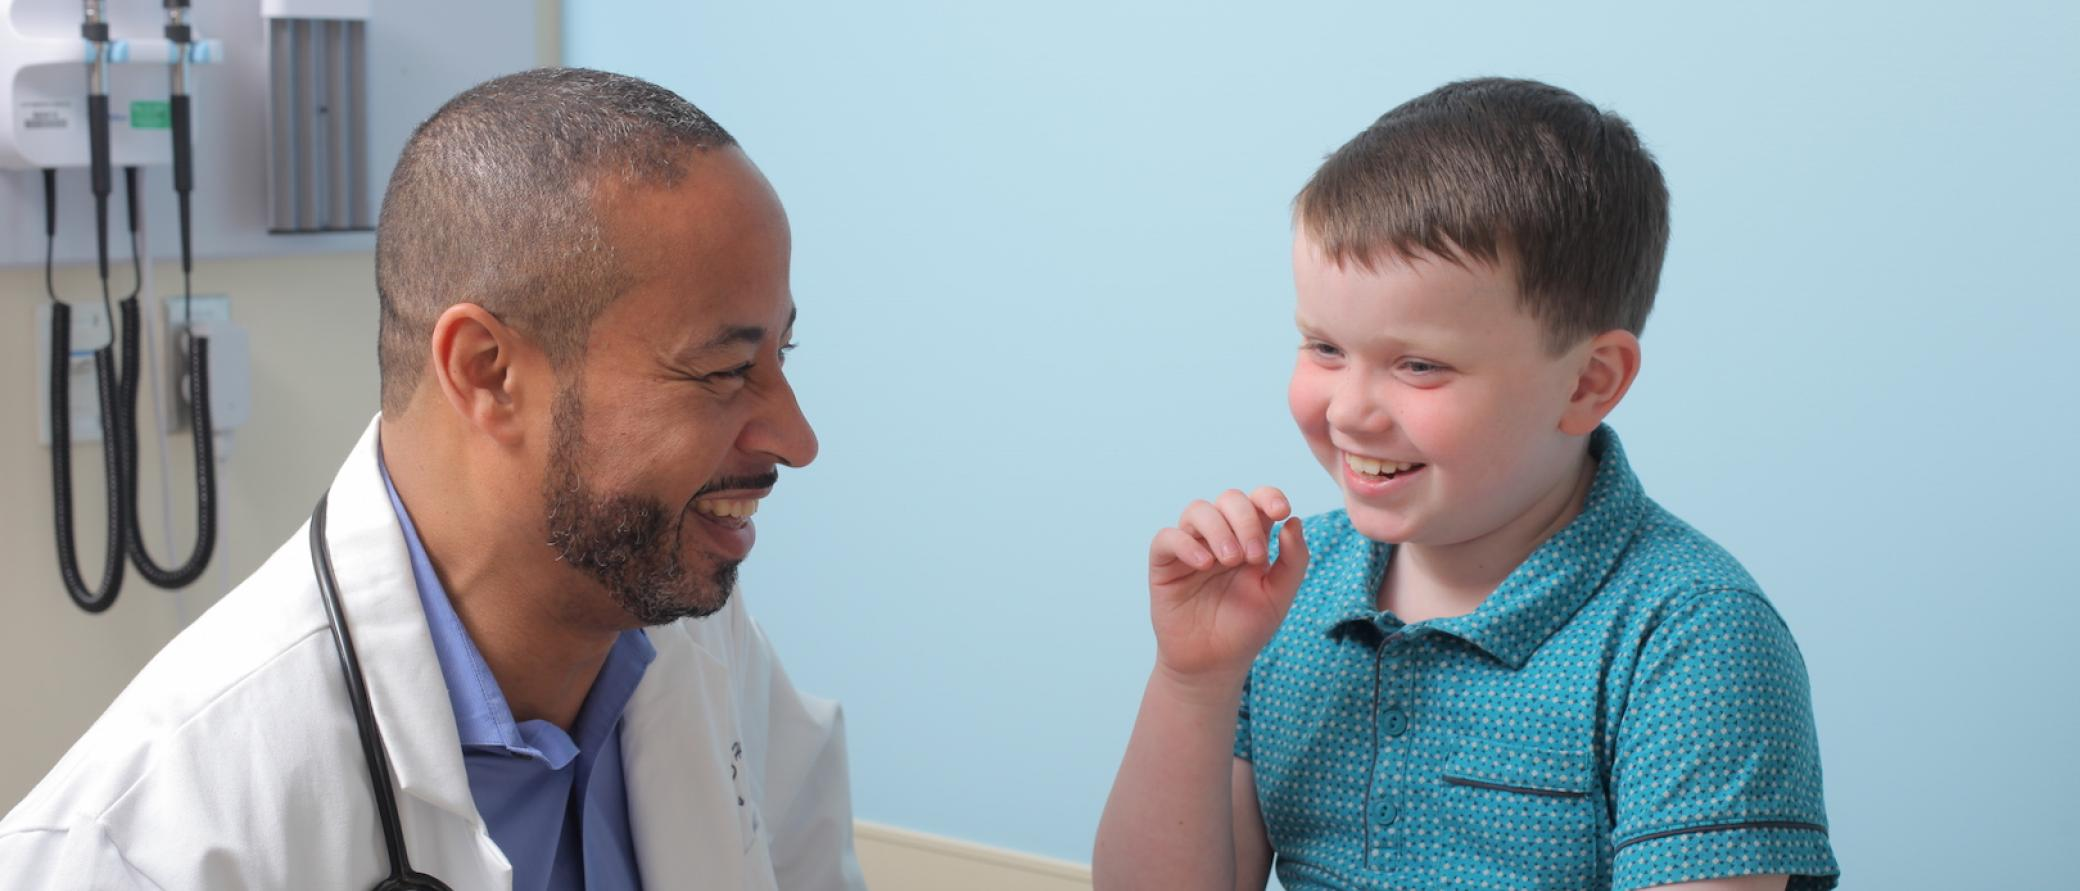 A doctor laughs with a little boy in a doctor's office.